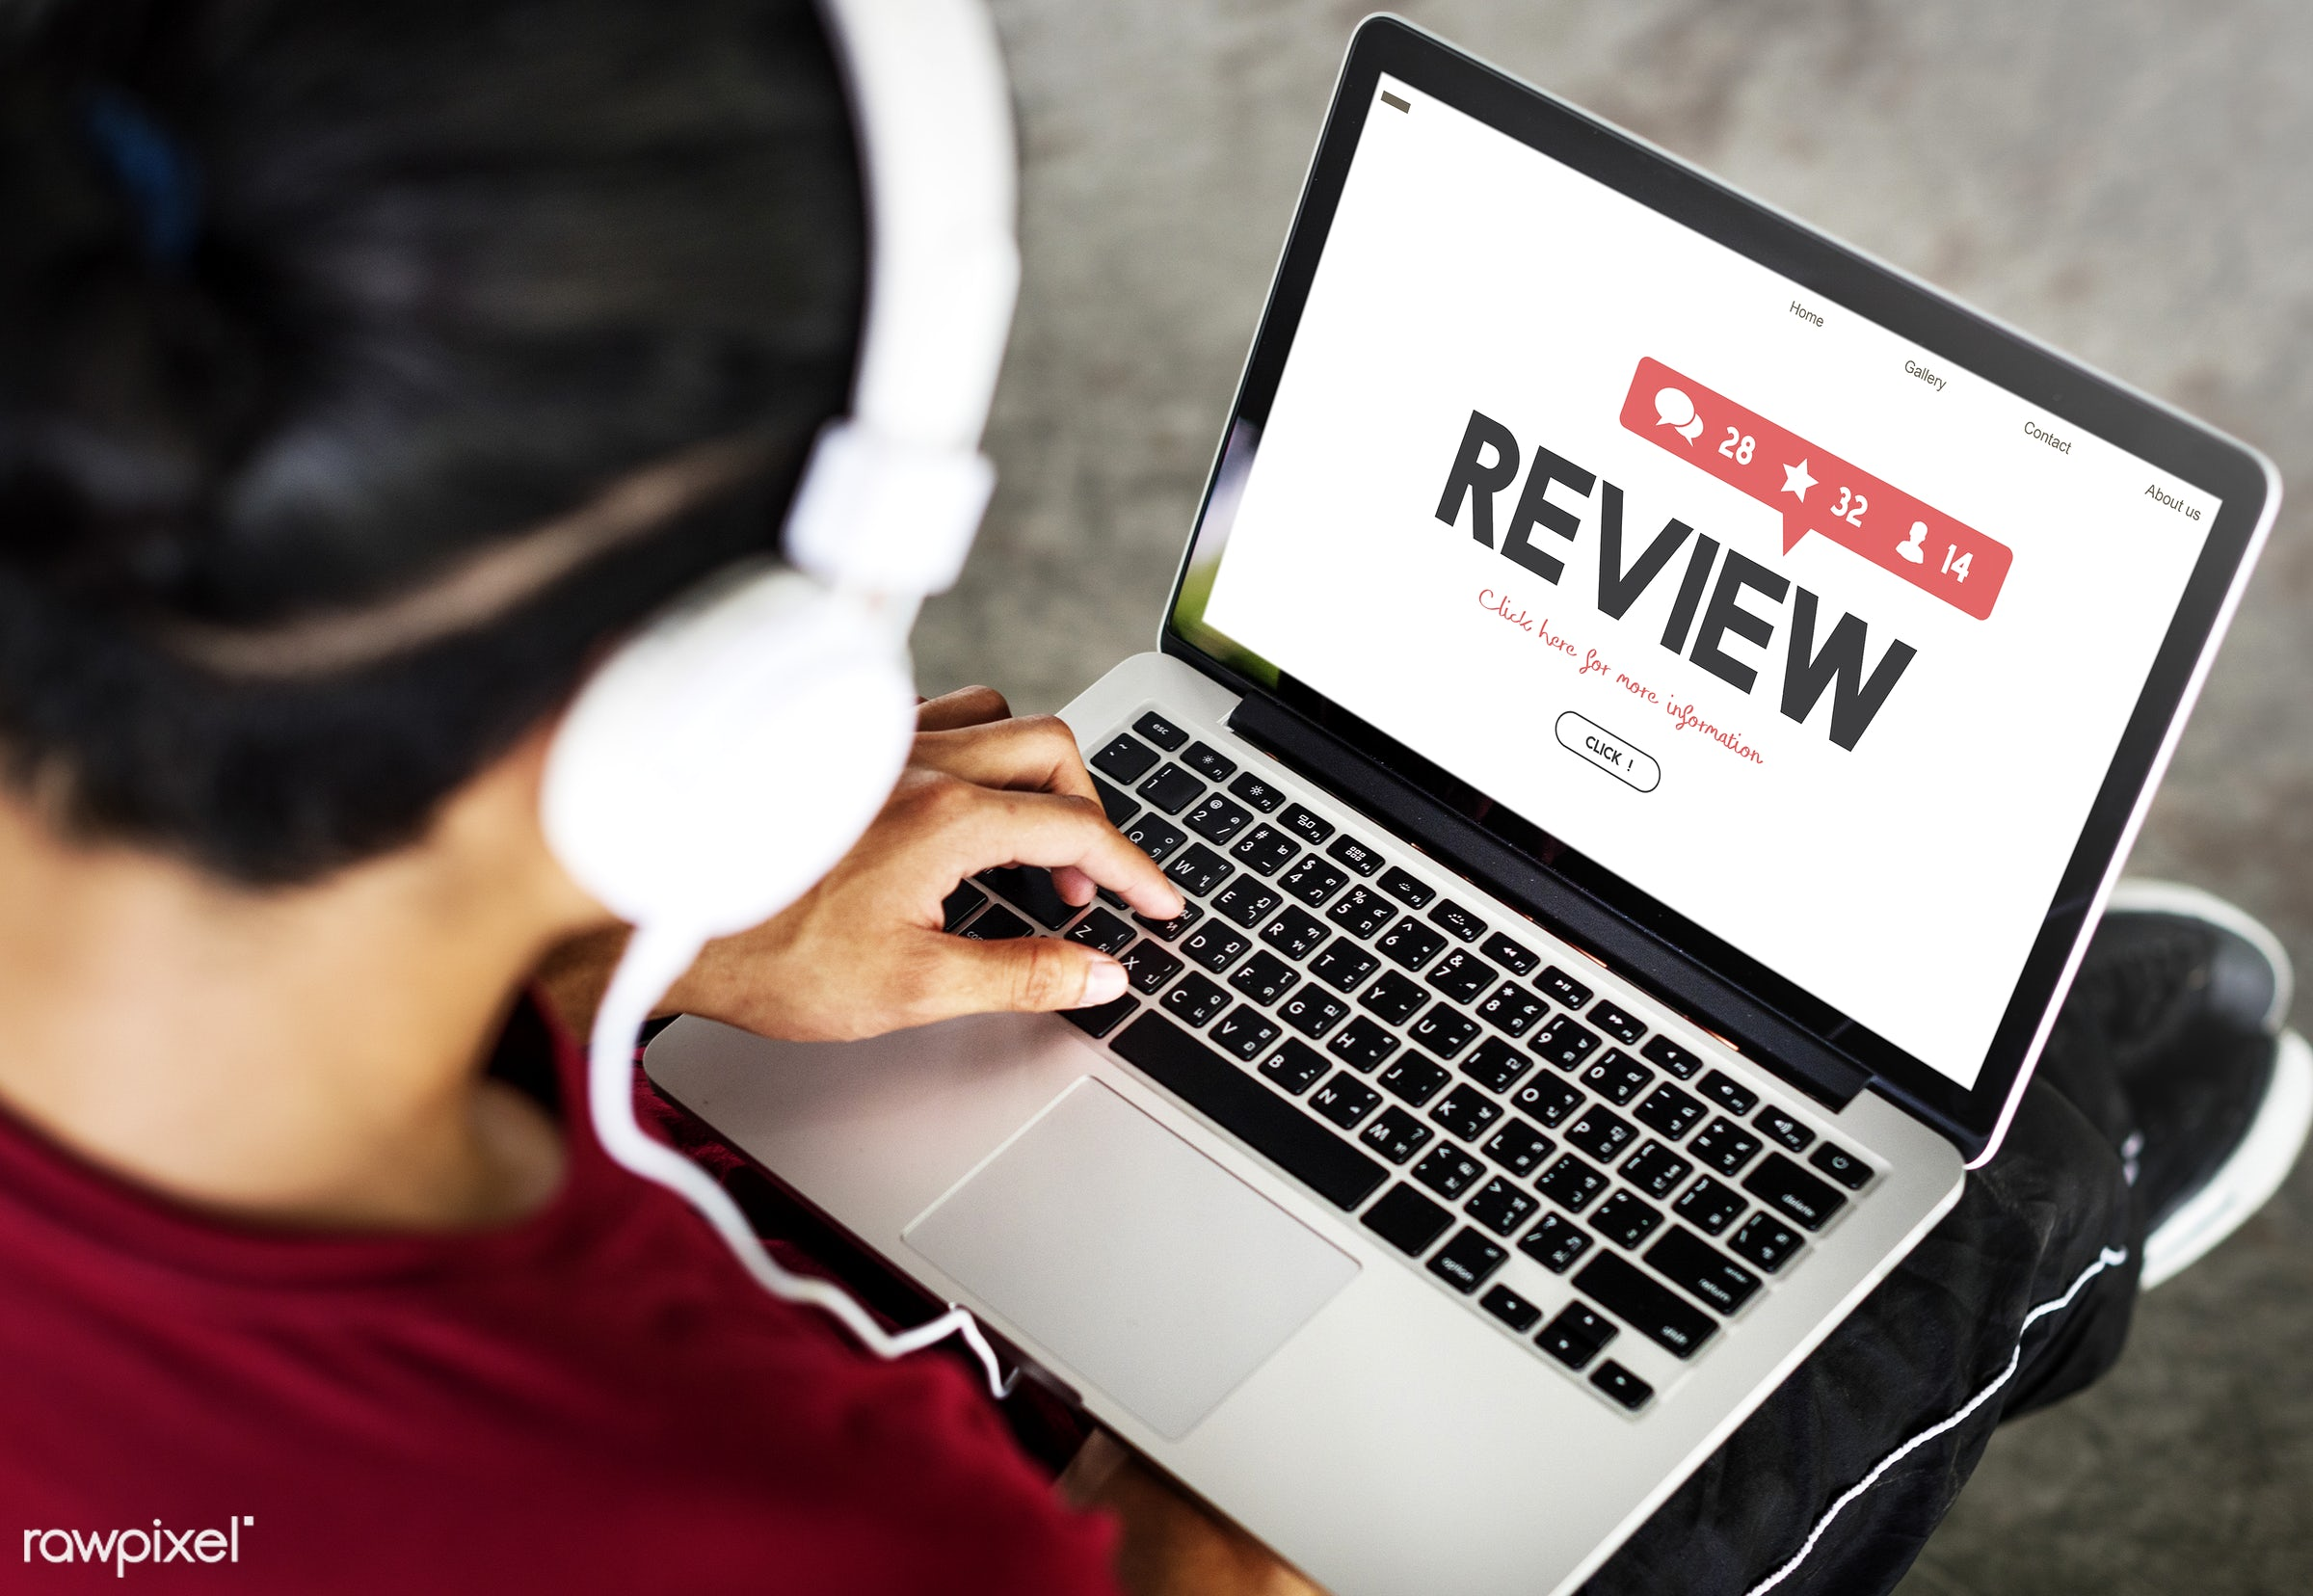 Online review - review, laptop, evaluation, feedback, comment, satisfaction, music, listen, survey, browse, browsing, choice...